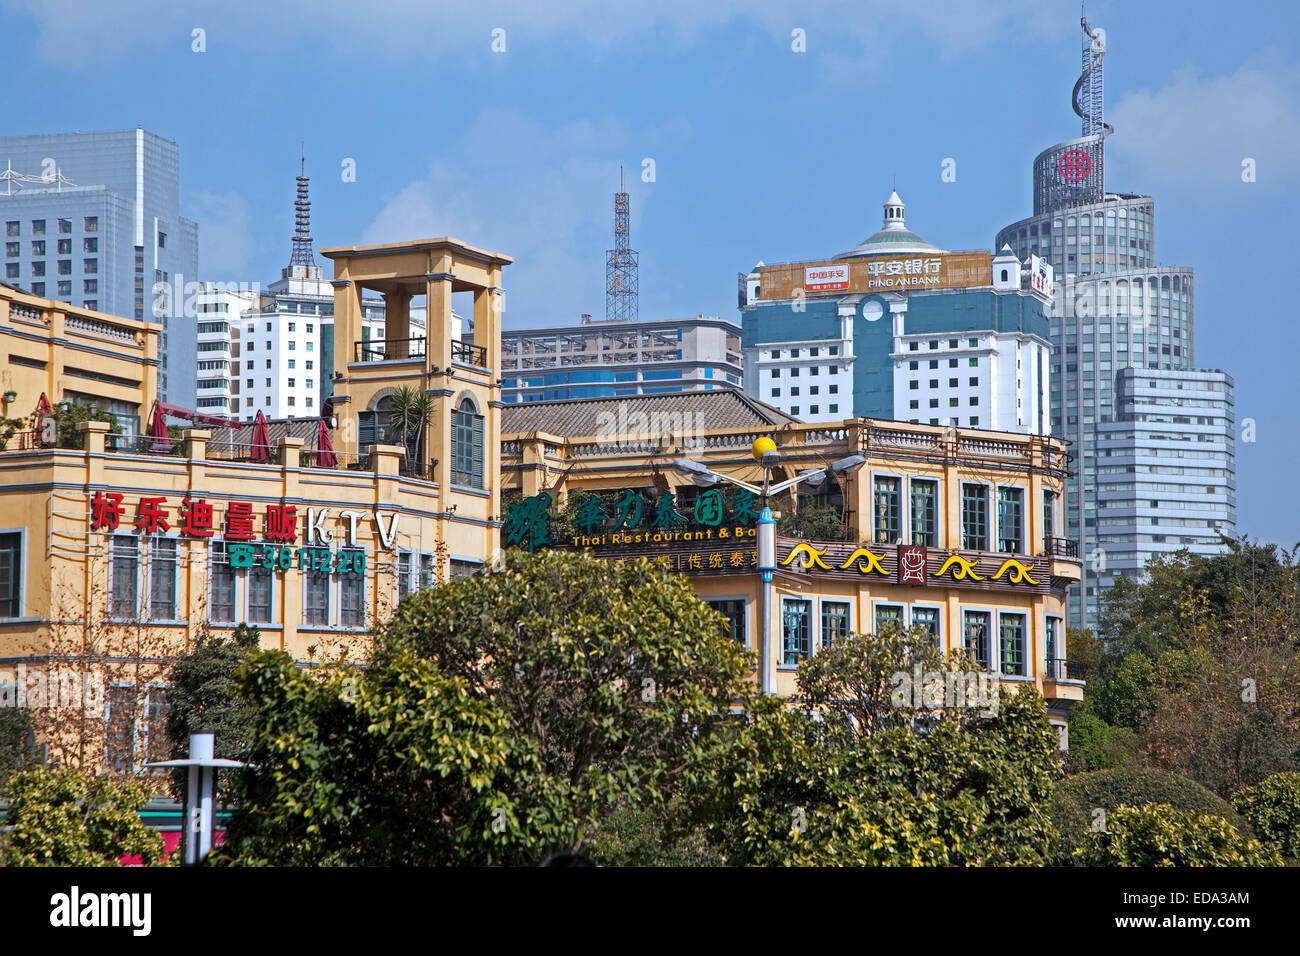 Modern highrise buildings and office blocks in the commercial city center of Kunming, Yunnan province, China - Stock Image